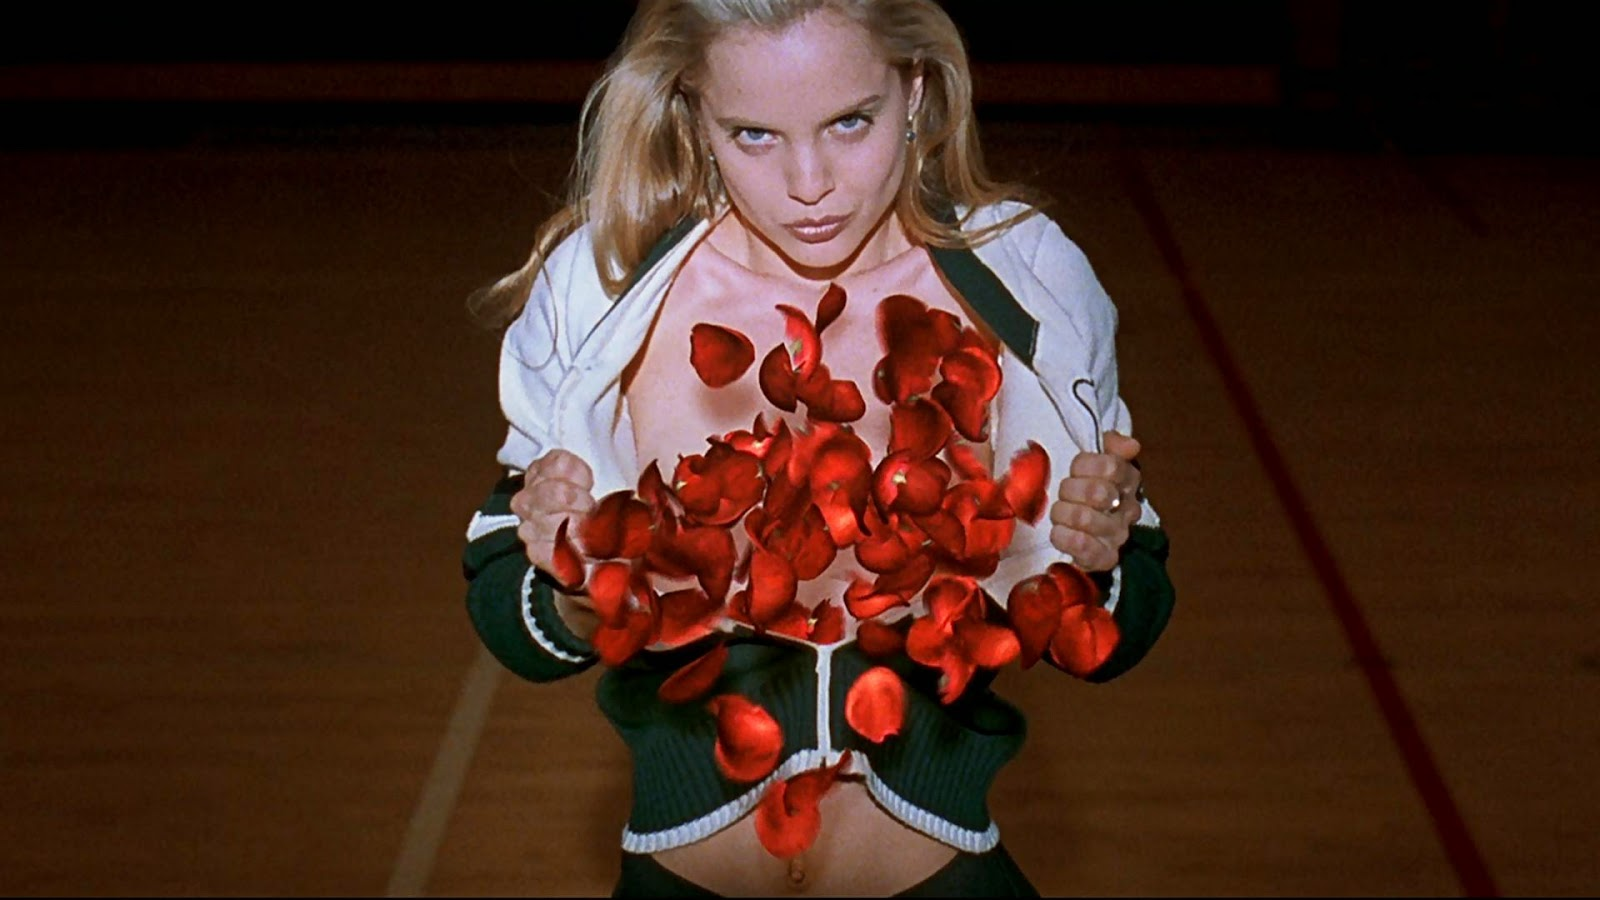 movies and philosophy now american beauty and the futility of dom movies and philosophy now